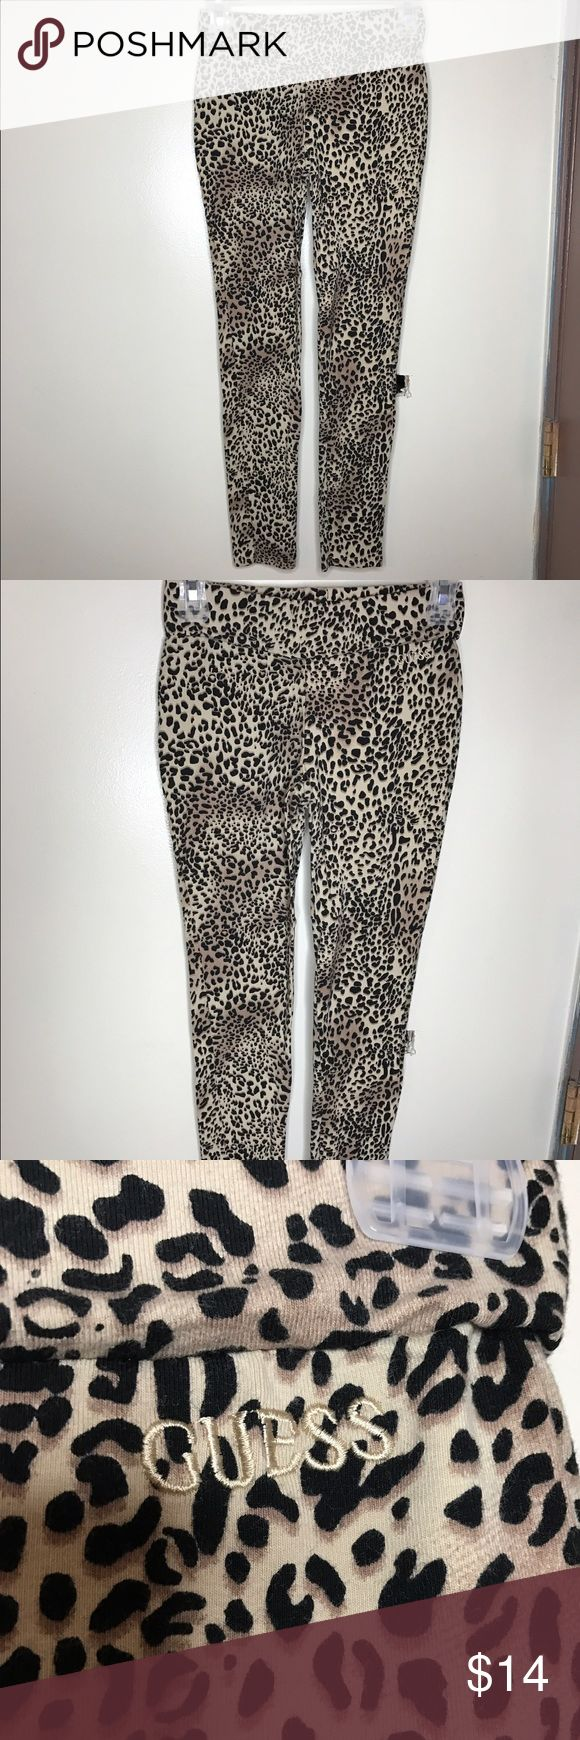 Guess cheetah leggings Guess cheetah leggings, never worn just tried on. Great condition! Size small  *I take offers through offer button. *You will receive item as is.   *Any questions leave down below!   Thank you for your interest 💕 Guess Pants Leggings